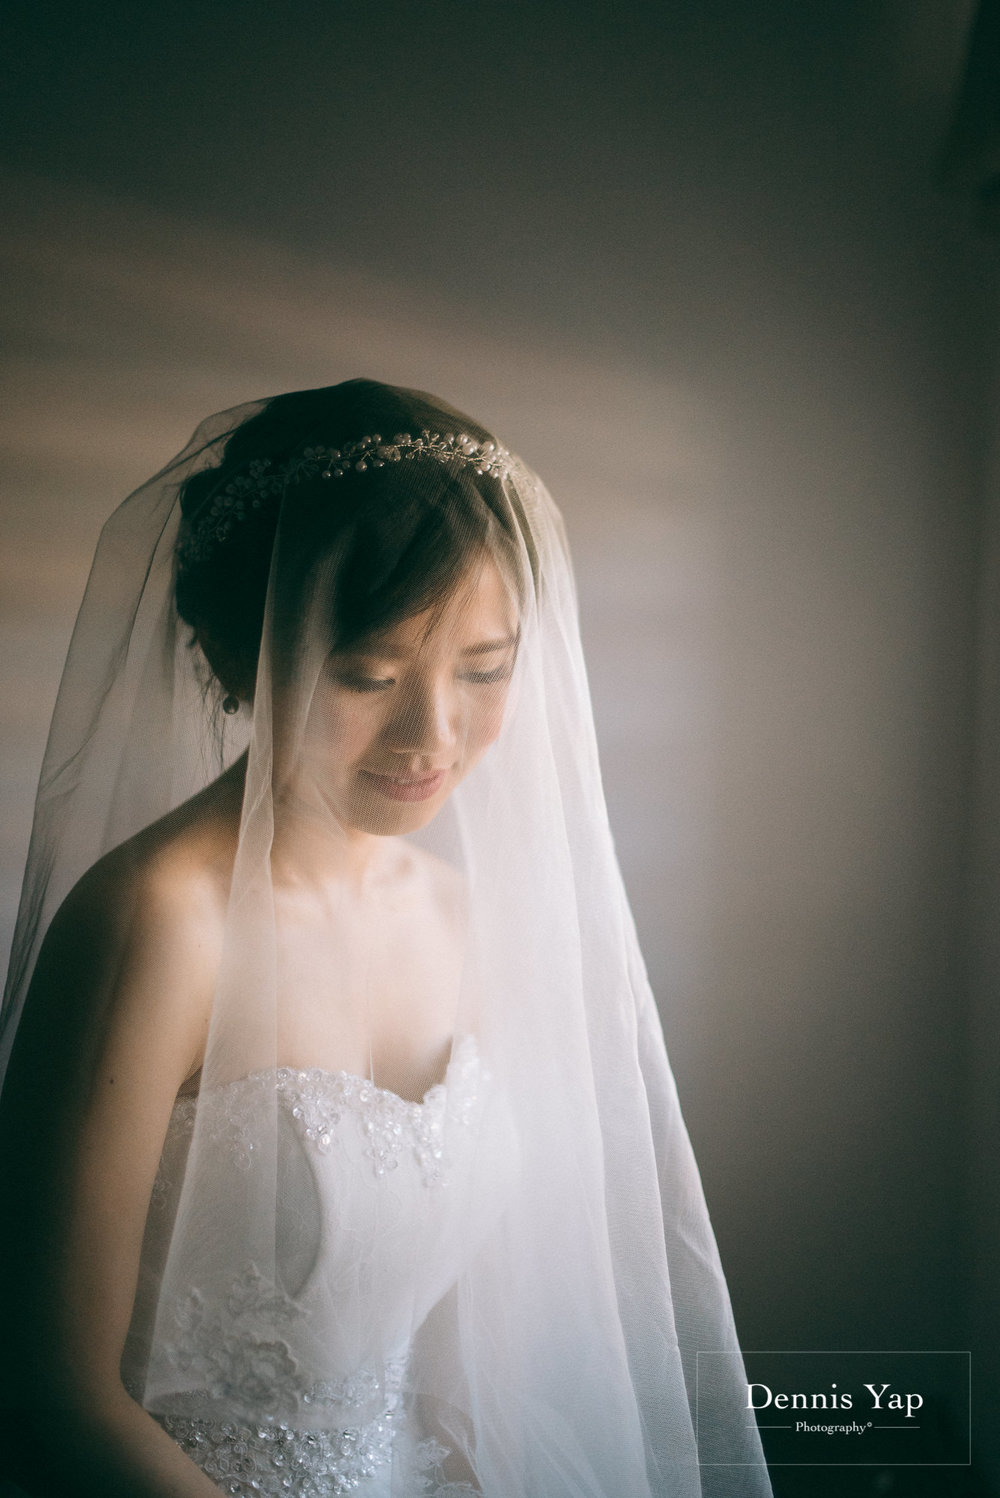 muy lip lee ting wedding day ipoh dennis yap photography -4.jpg